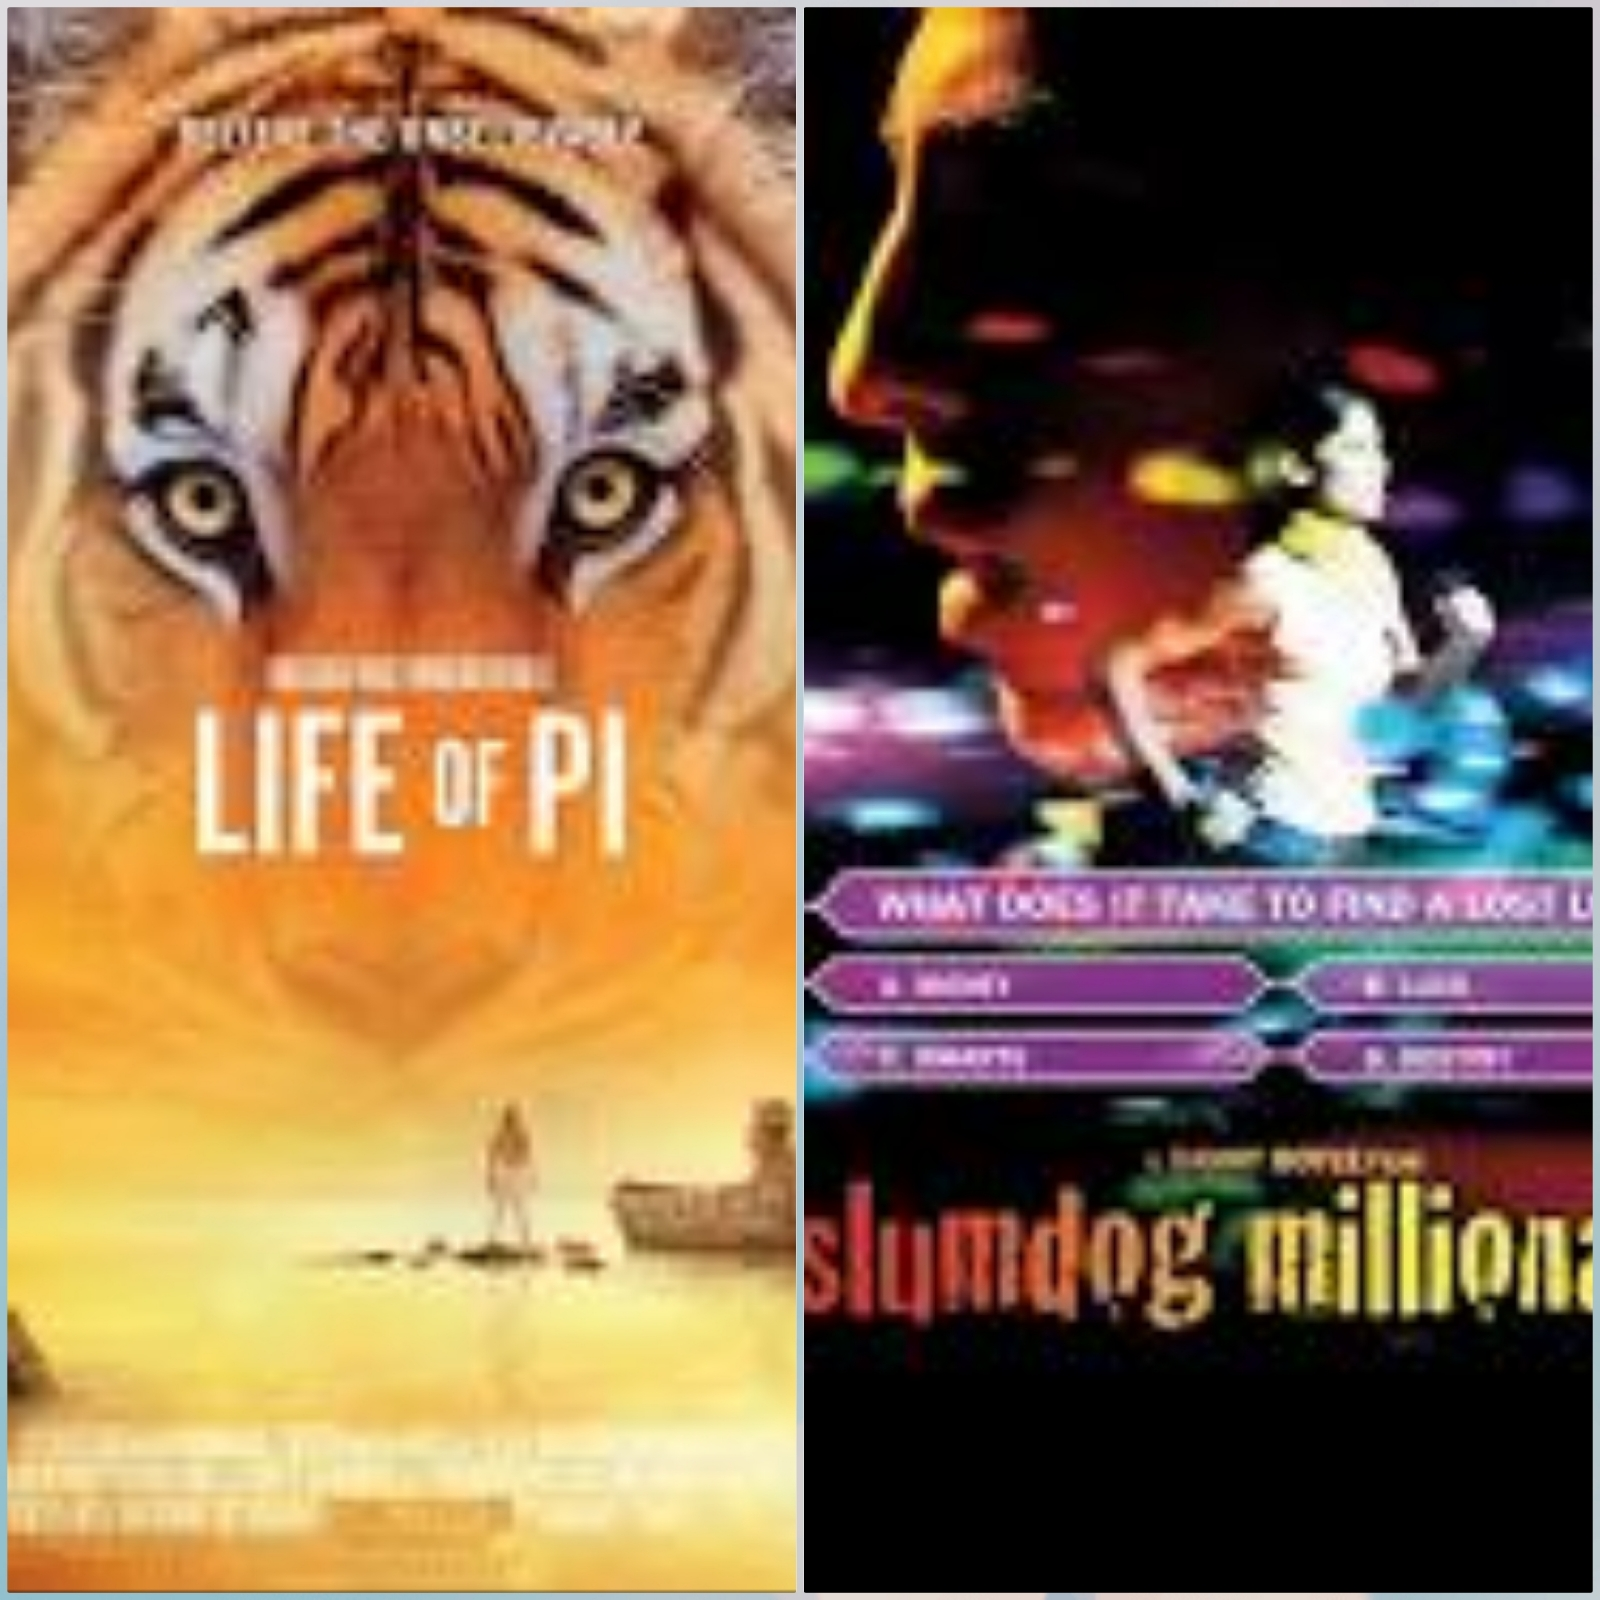 Irrfan-Khan-Life-Of-Pi-and-Slumdog-Millionire